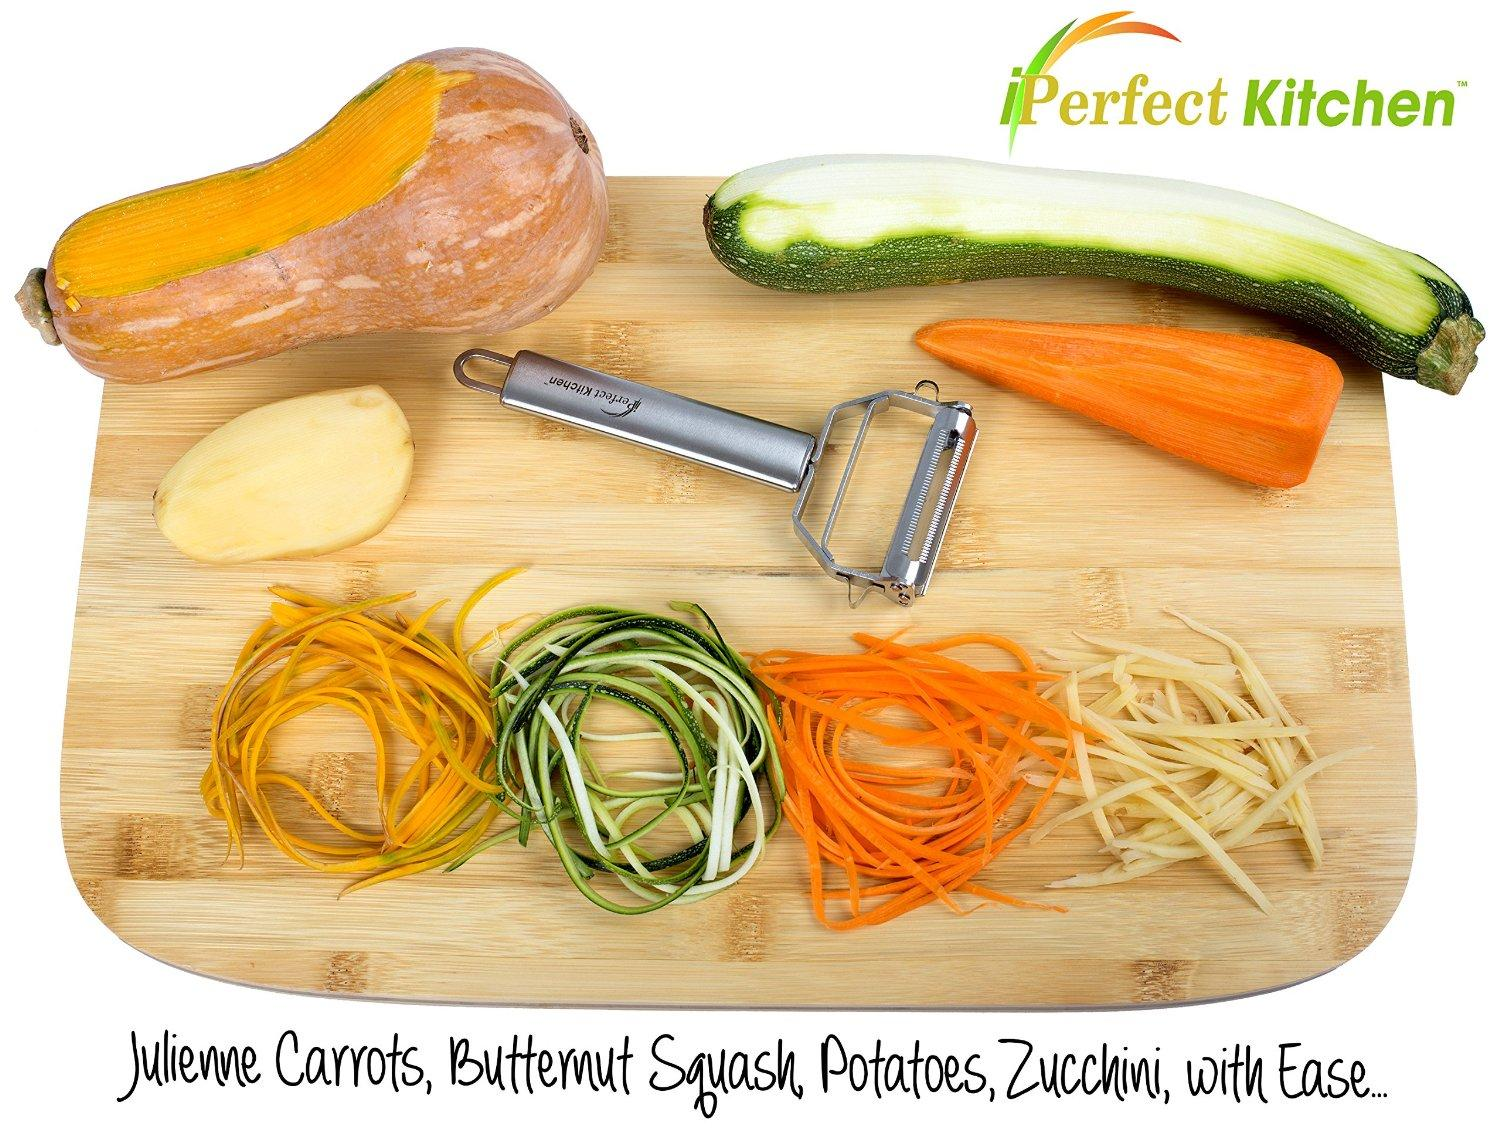 $8.95 iPerfect Kitchen Ultra Sharp Stainless Steel Dual Julienne & Vegetable Peeler with Cleaning Brush